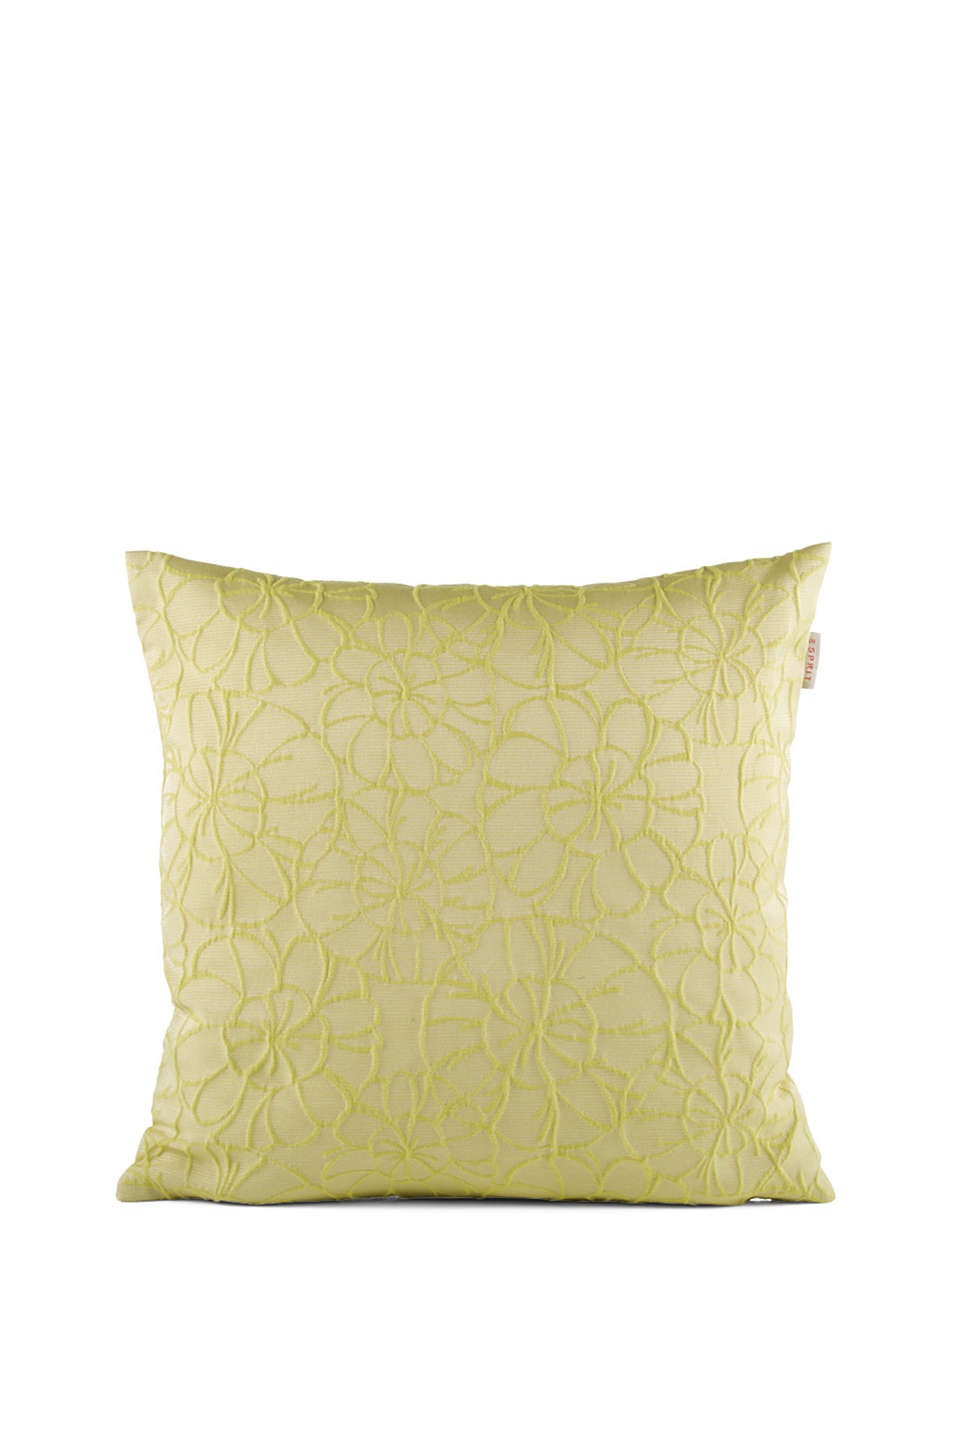 Esprit - Cushion cover in novelty yarn